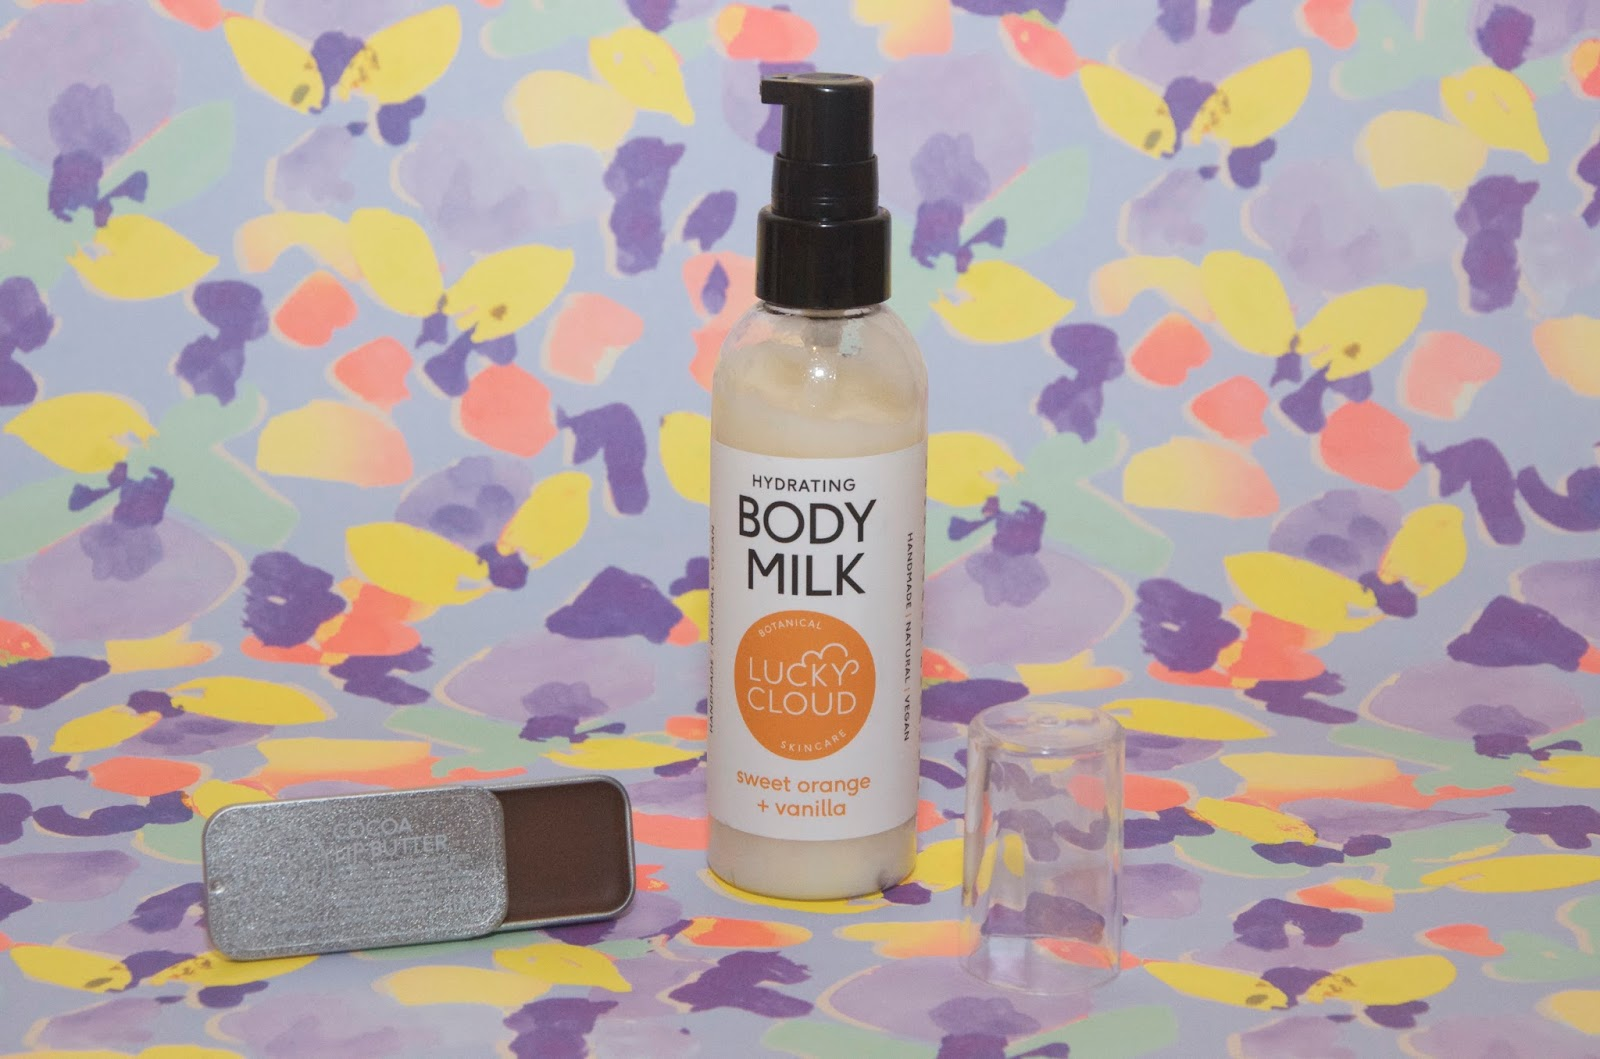 Lotion, lip balm and floral background